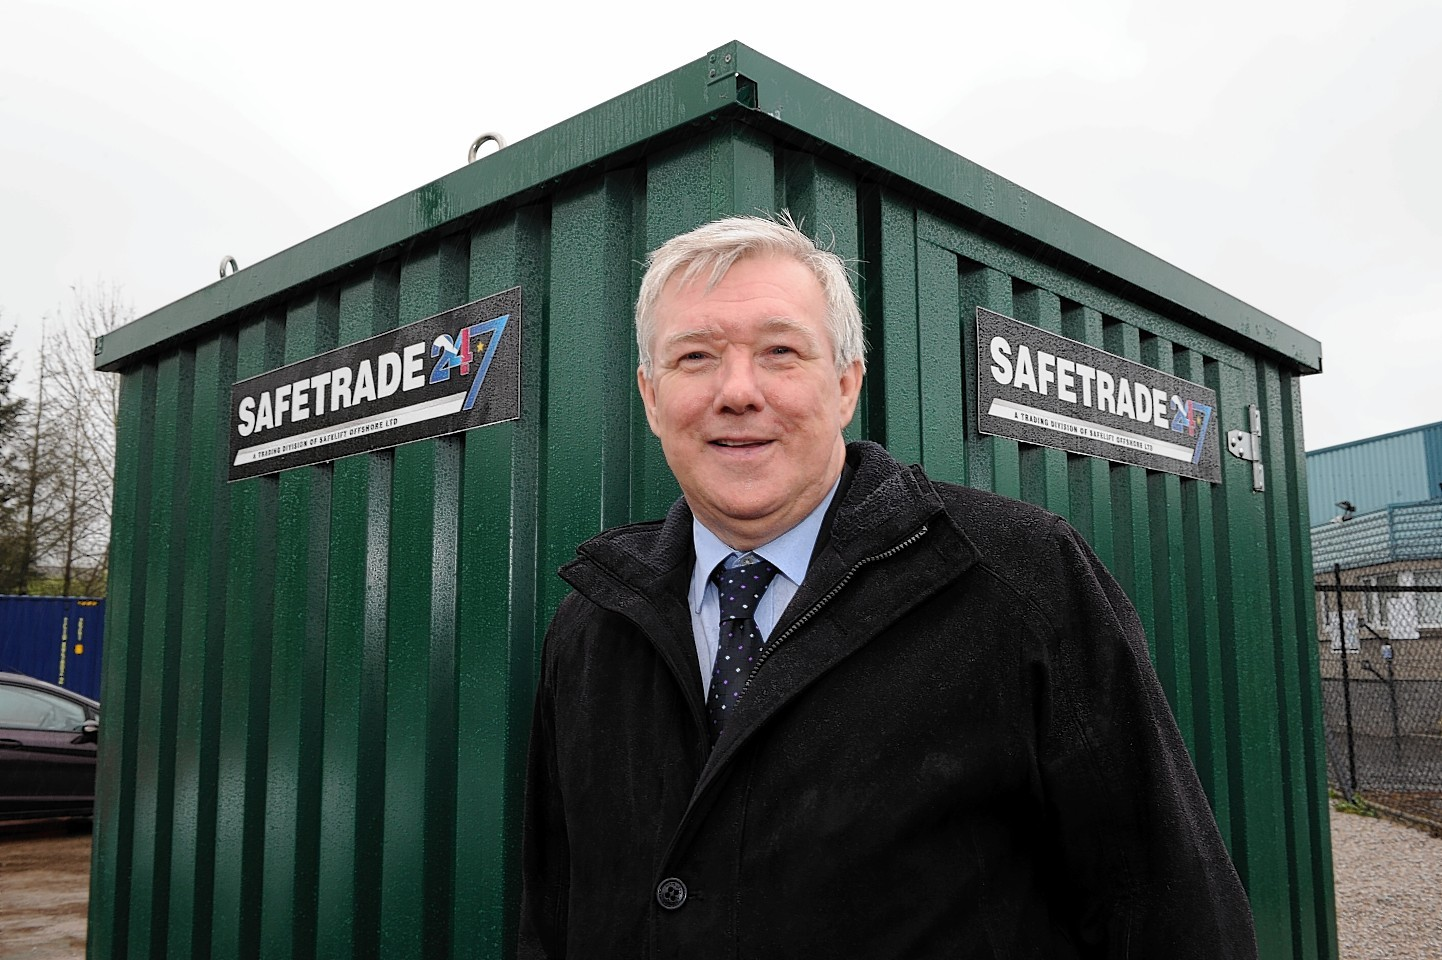 Bill Cheyne, Commercial Development Manager of SafeTrade 247